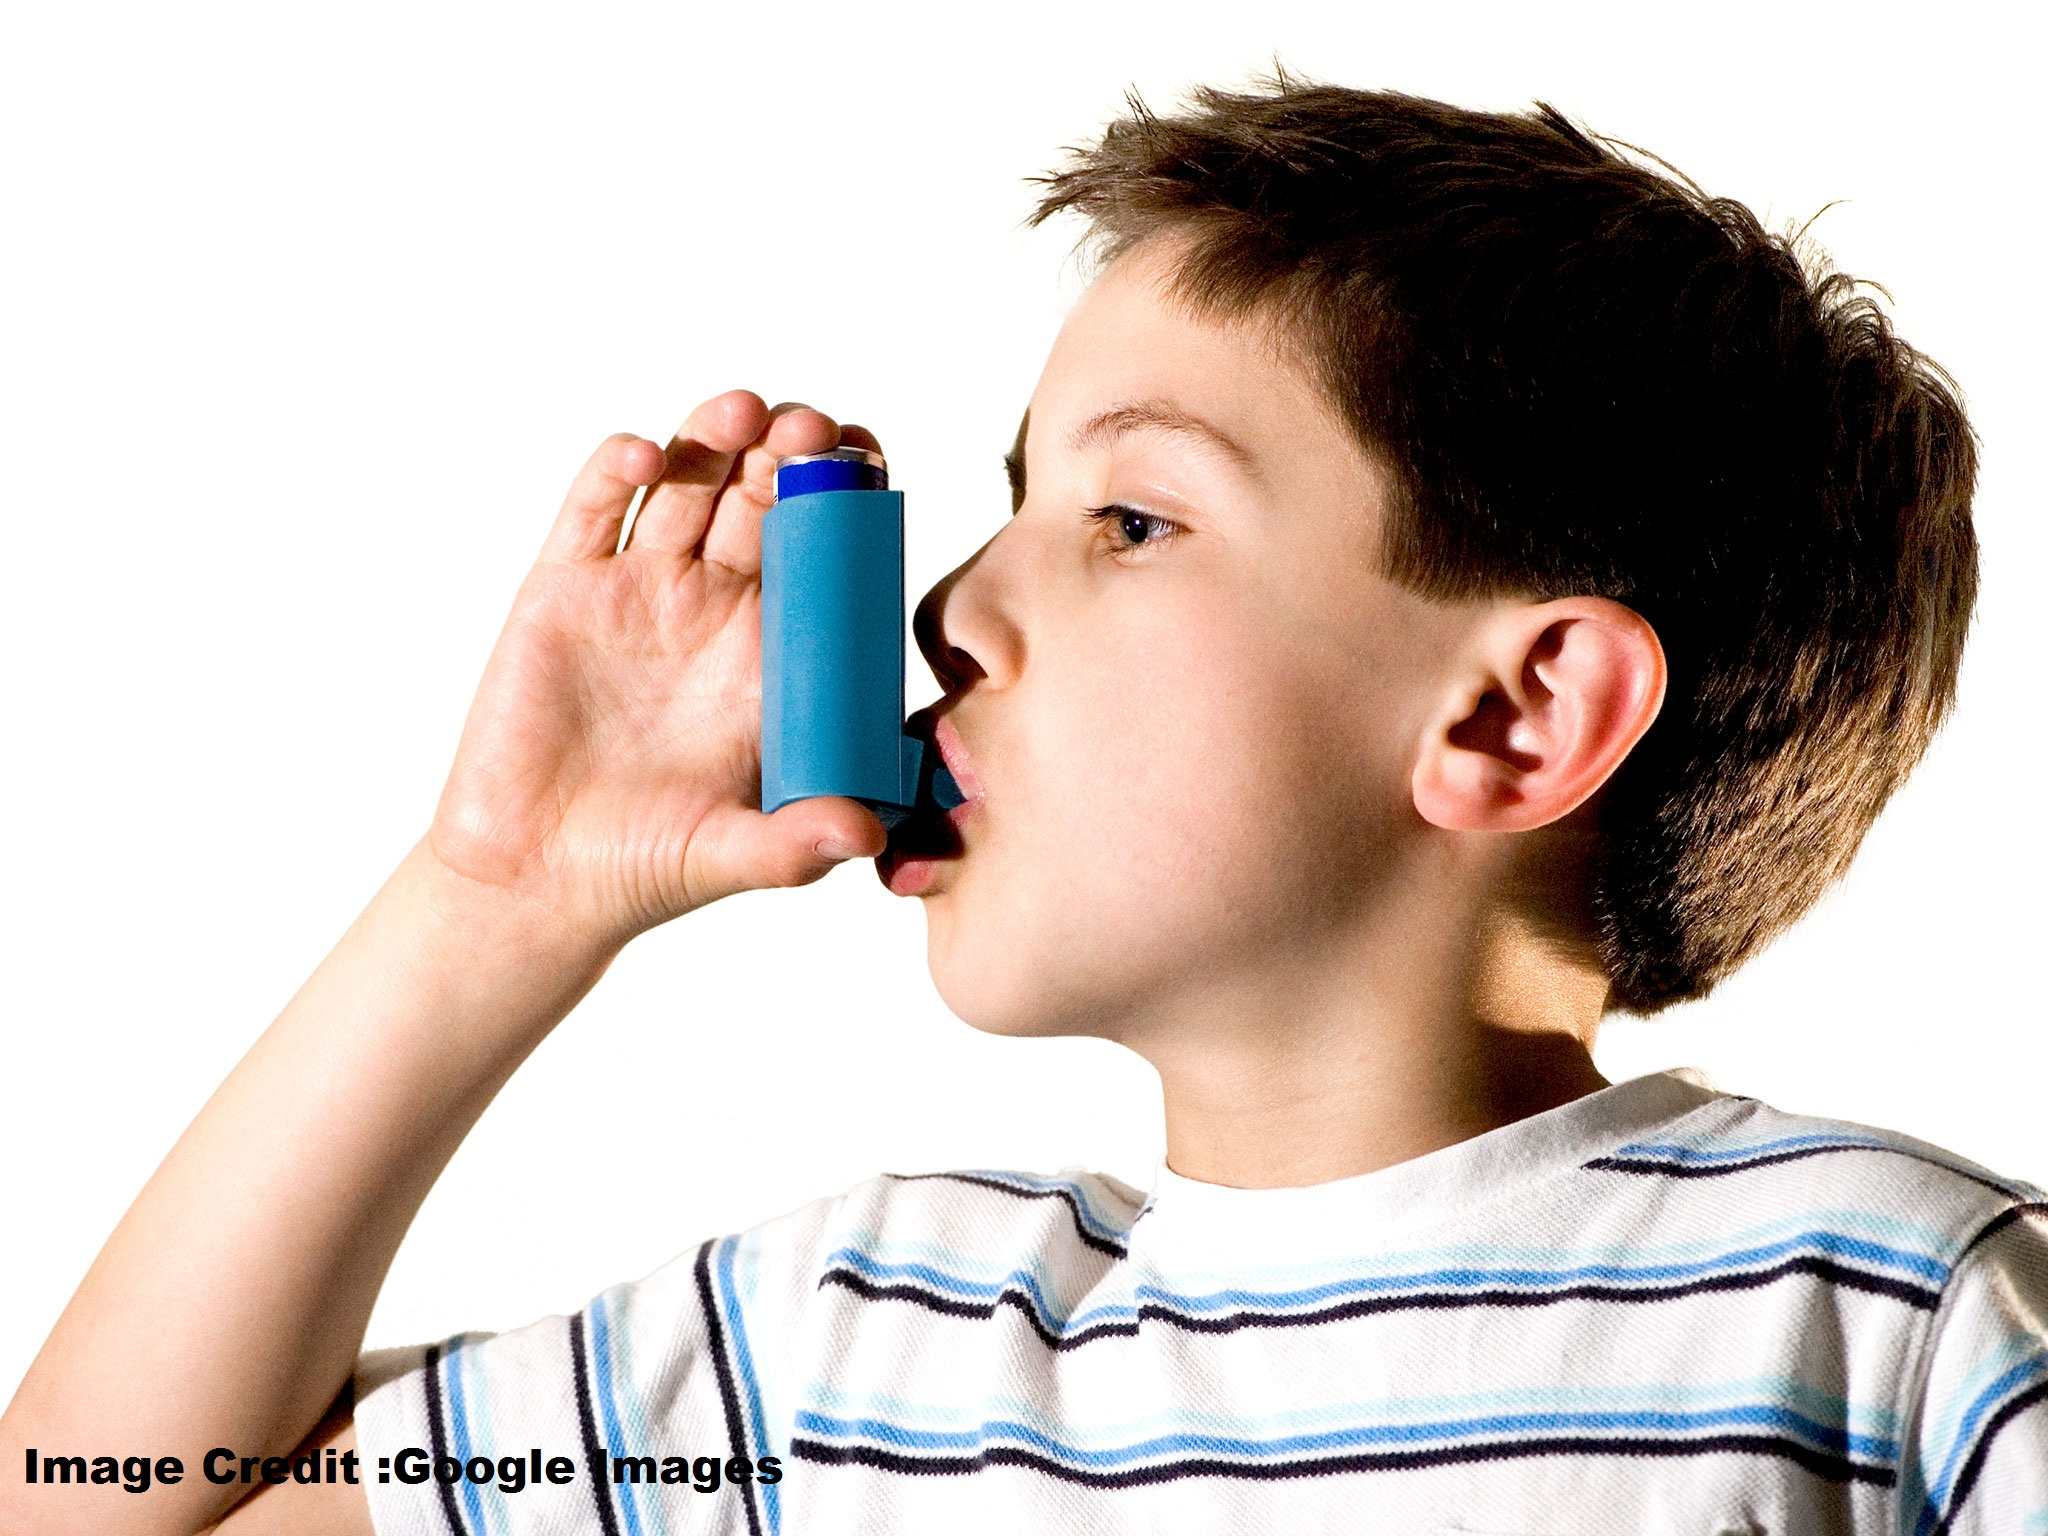 A class of peptide compound may help in reducing the risk of RSV related asthma